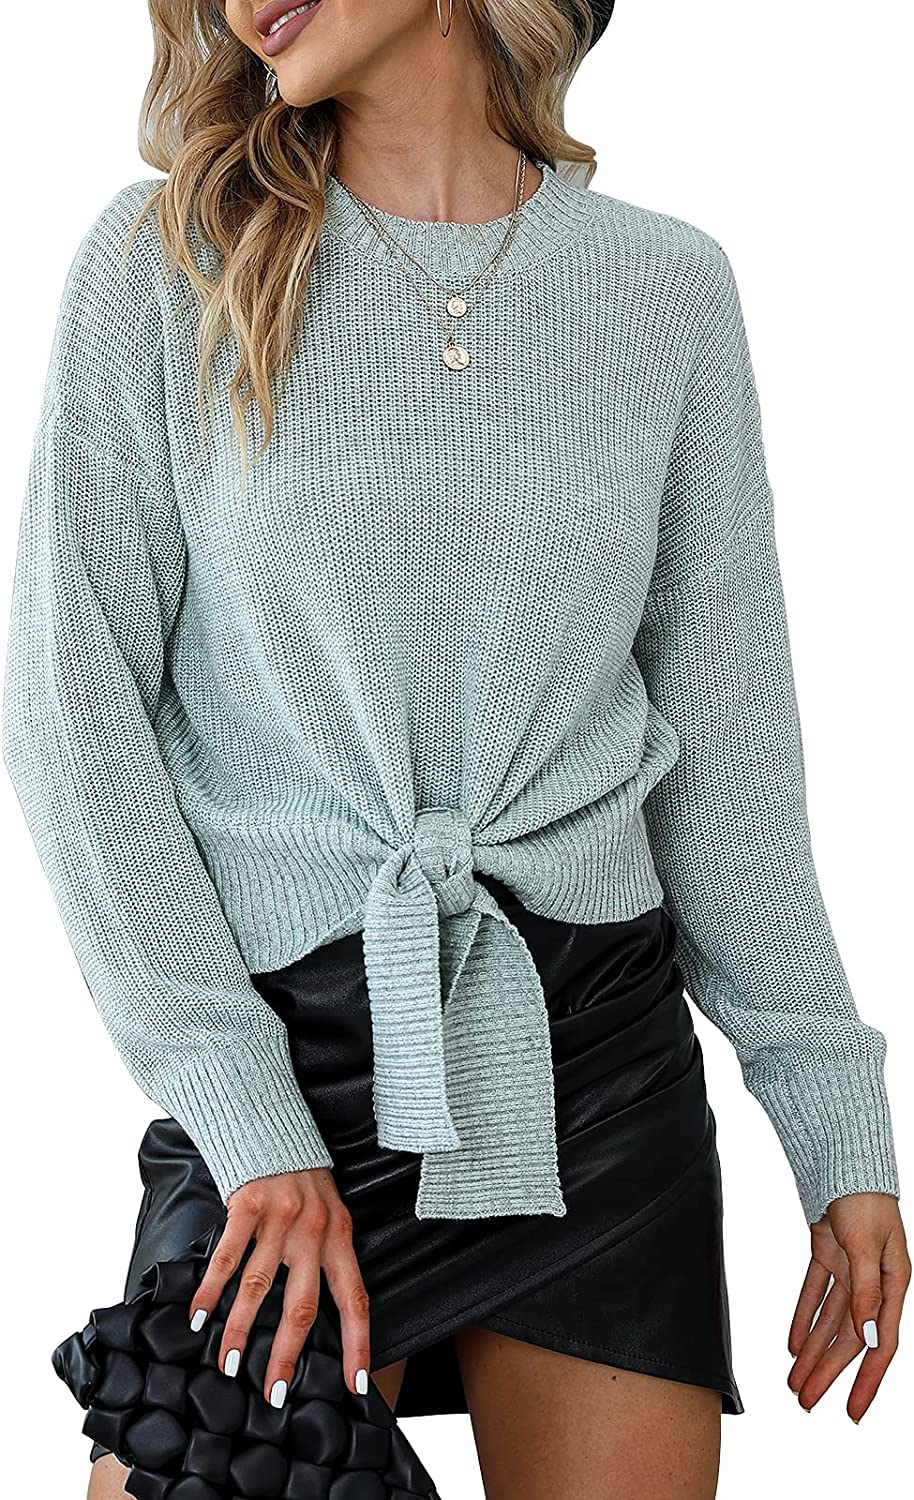 EXLURA Women's Tie Front Sweater Long Sleeve Crew Neck Knit Ribbed Pullover Waist Knot Front Casual Tops Jumper